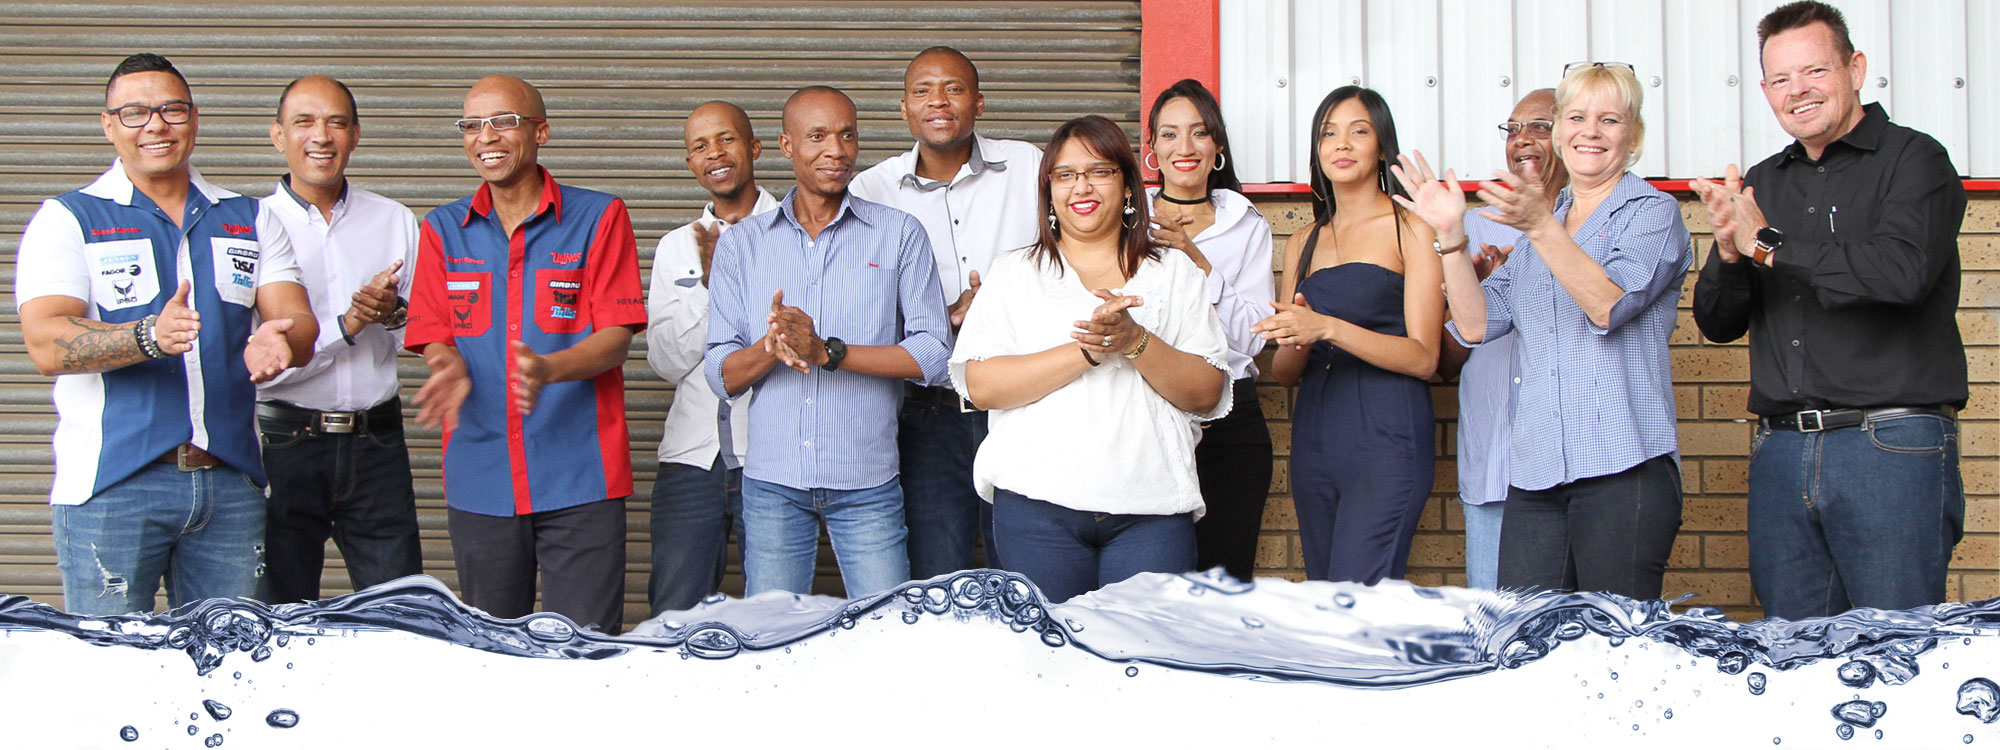 lead-laundry-&-catering-cape-town